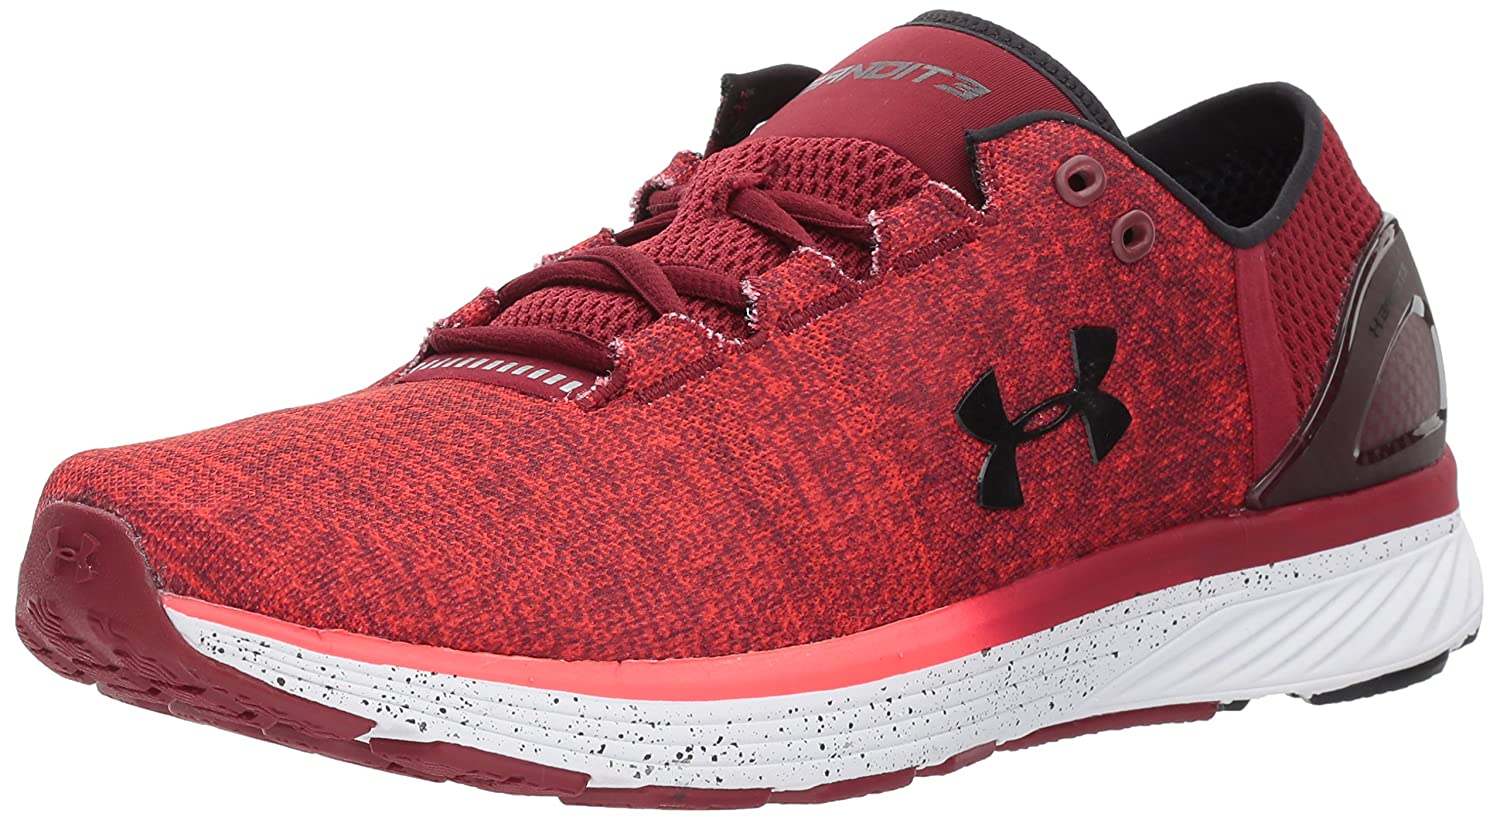 Under Armour Women's Charged Bandit 3 Running Shoe B01N6BCW9A 7 M US|Marathon Red (602)/Cardinal